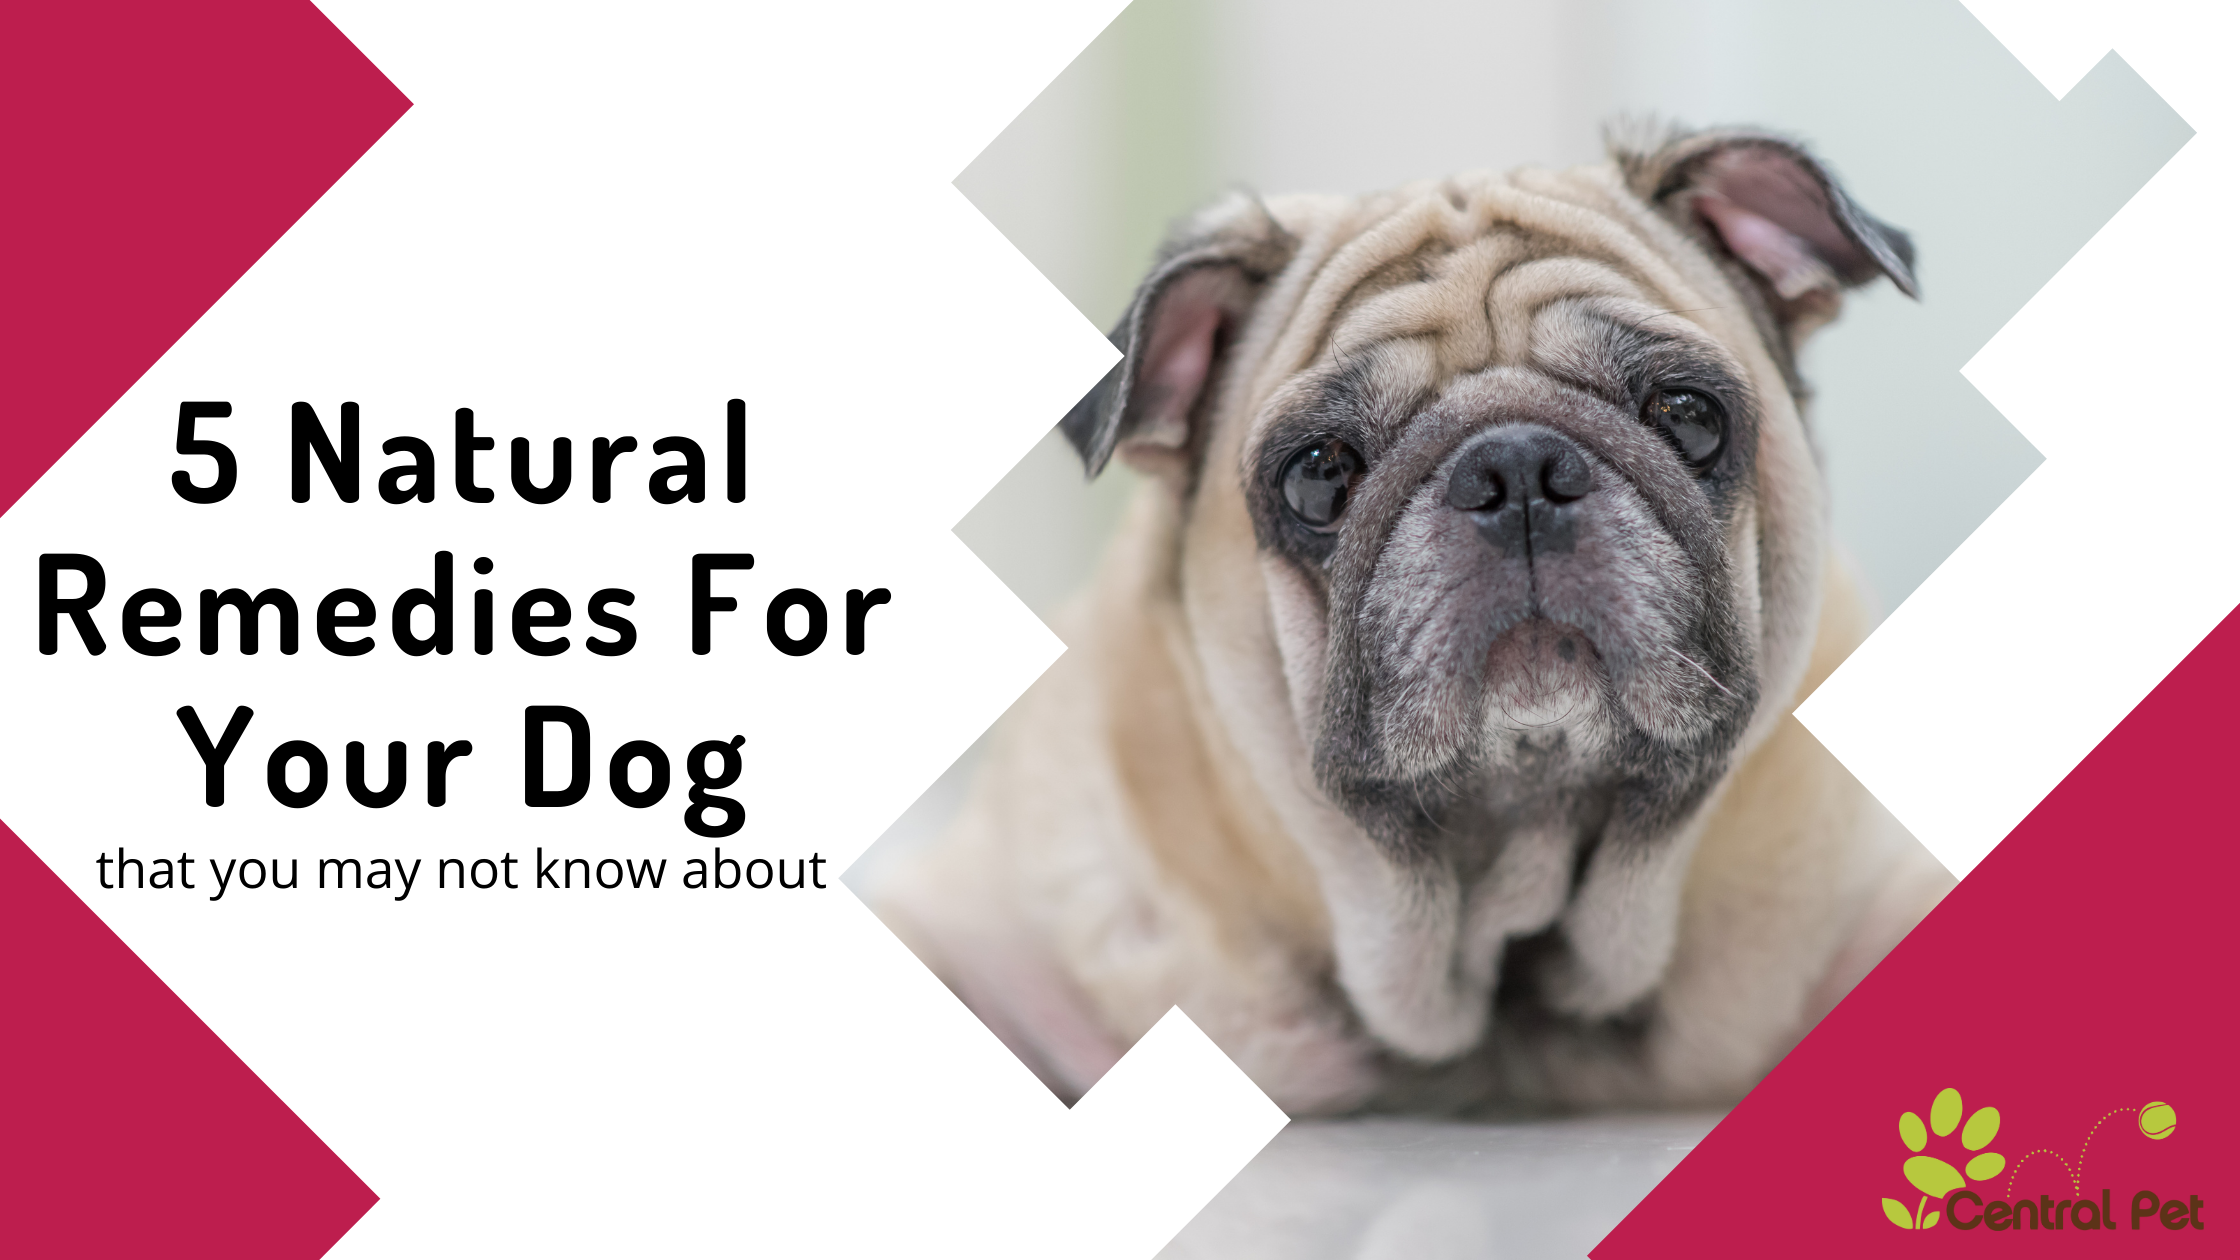 5 Natural Remedies for Dogs that You May Not Know About